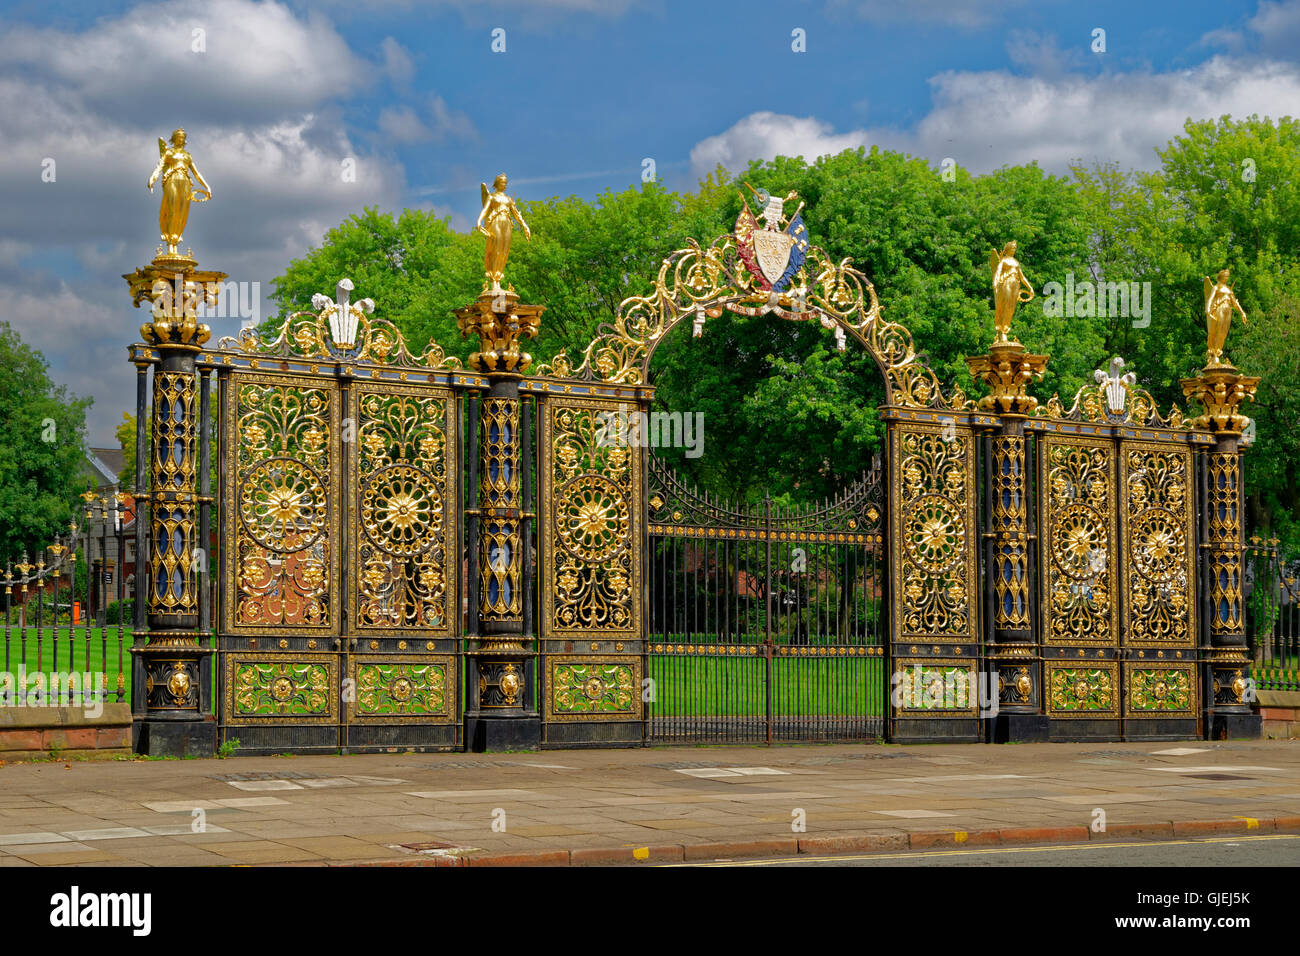 Ornate Town Hall gates at Warrington town centre, Cheshire. - Stock Image